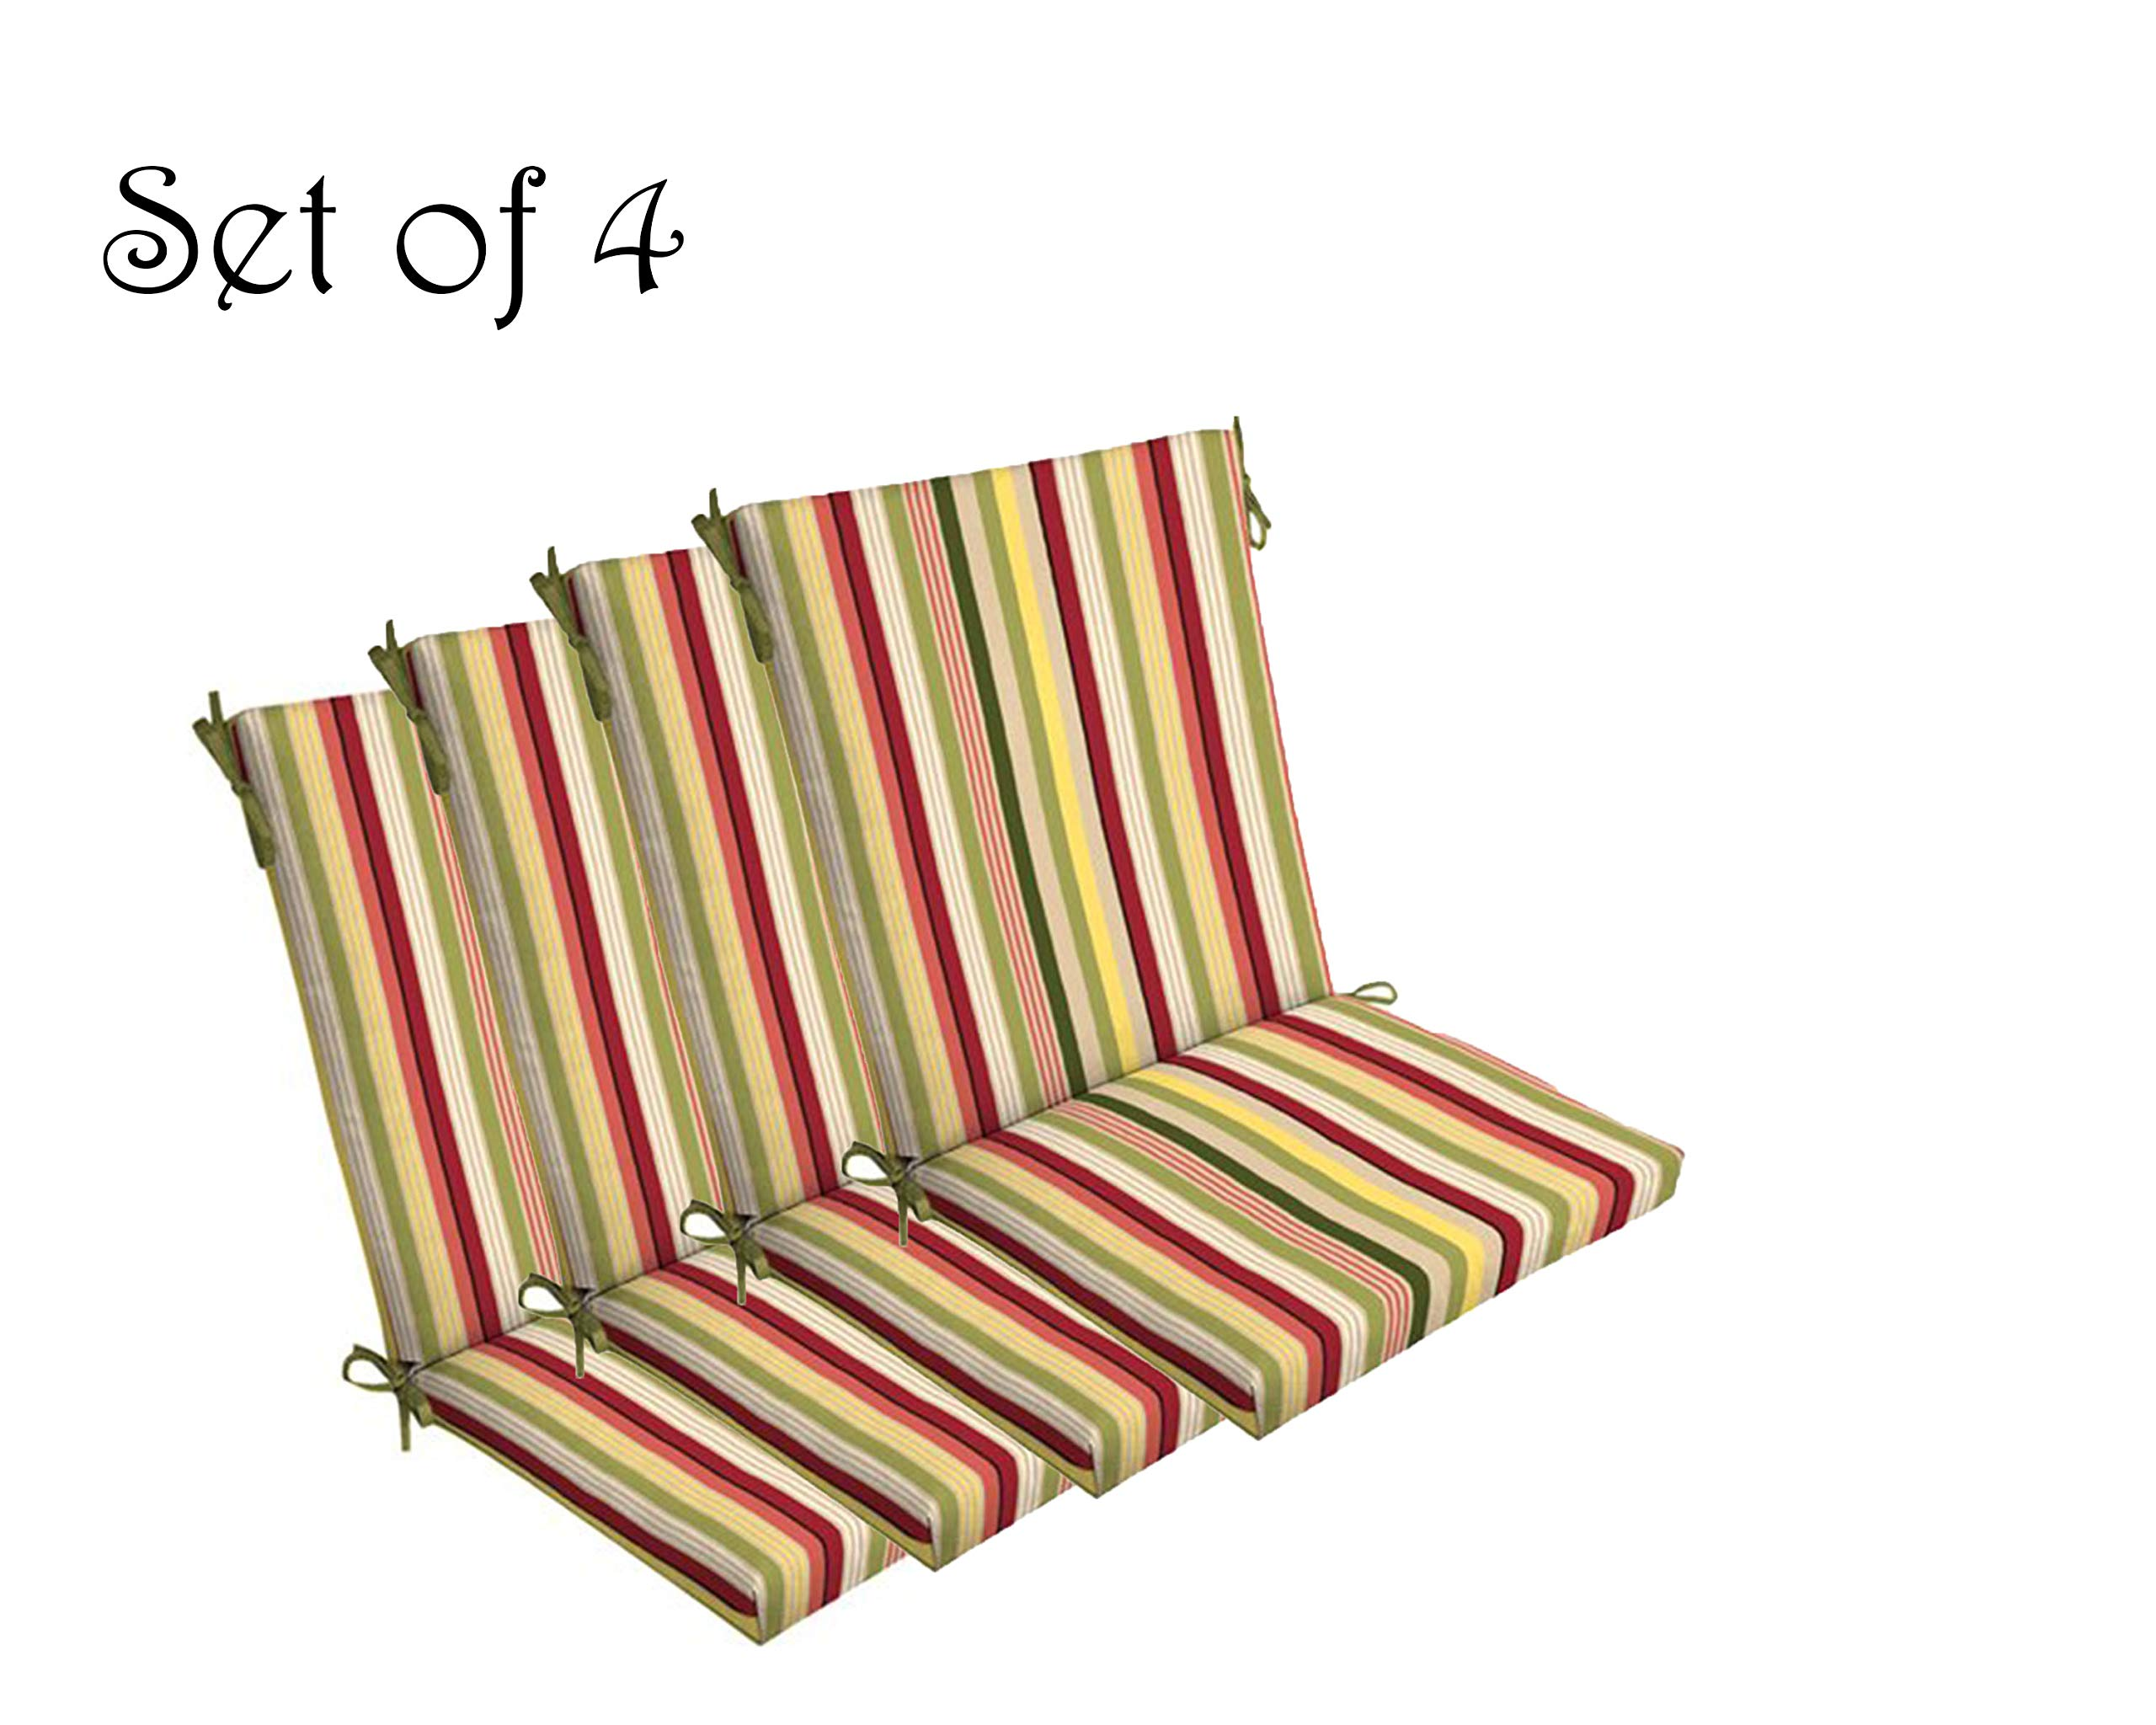 Comfort Classics Inc. Set of 4 Indoor/Outdoor Dining Chair Cushion 20'' x 44'' x 3.5'' in Polyester Multi Striped